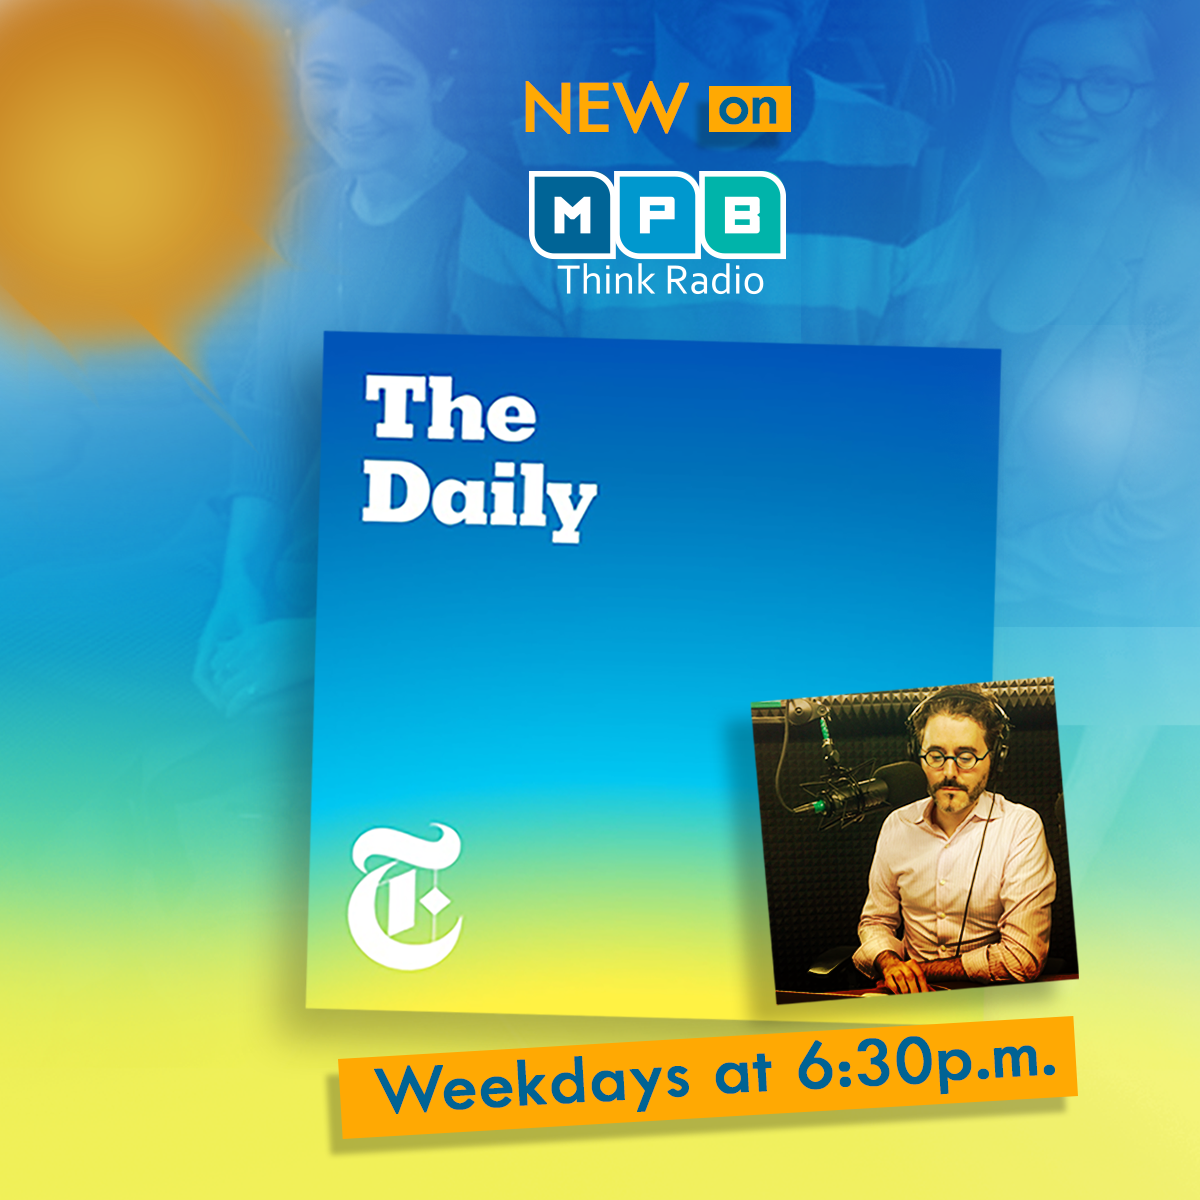 Listen to 'The Daily' weekdays at 6:30 p.m. on Think Radio.